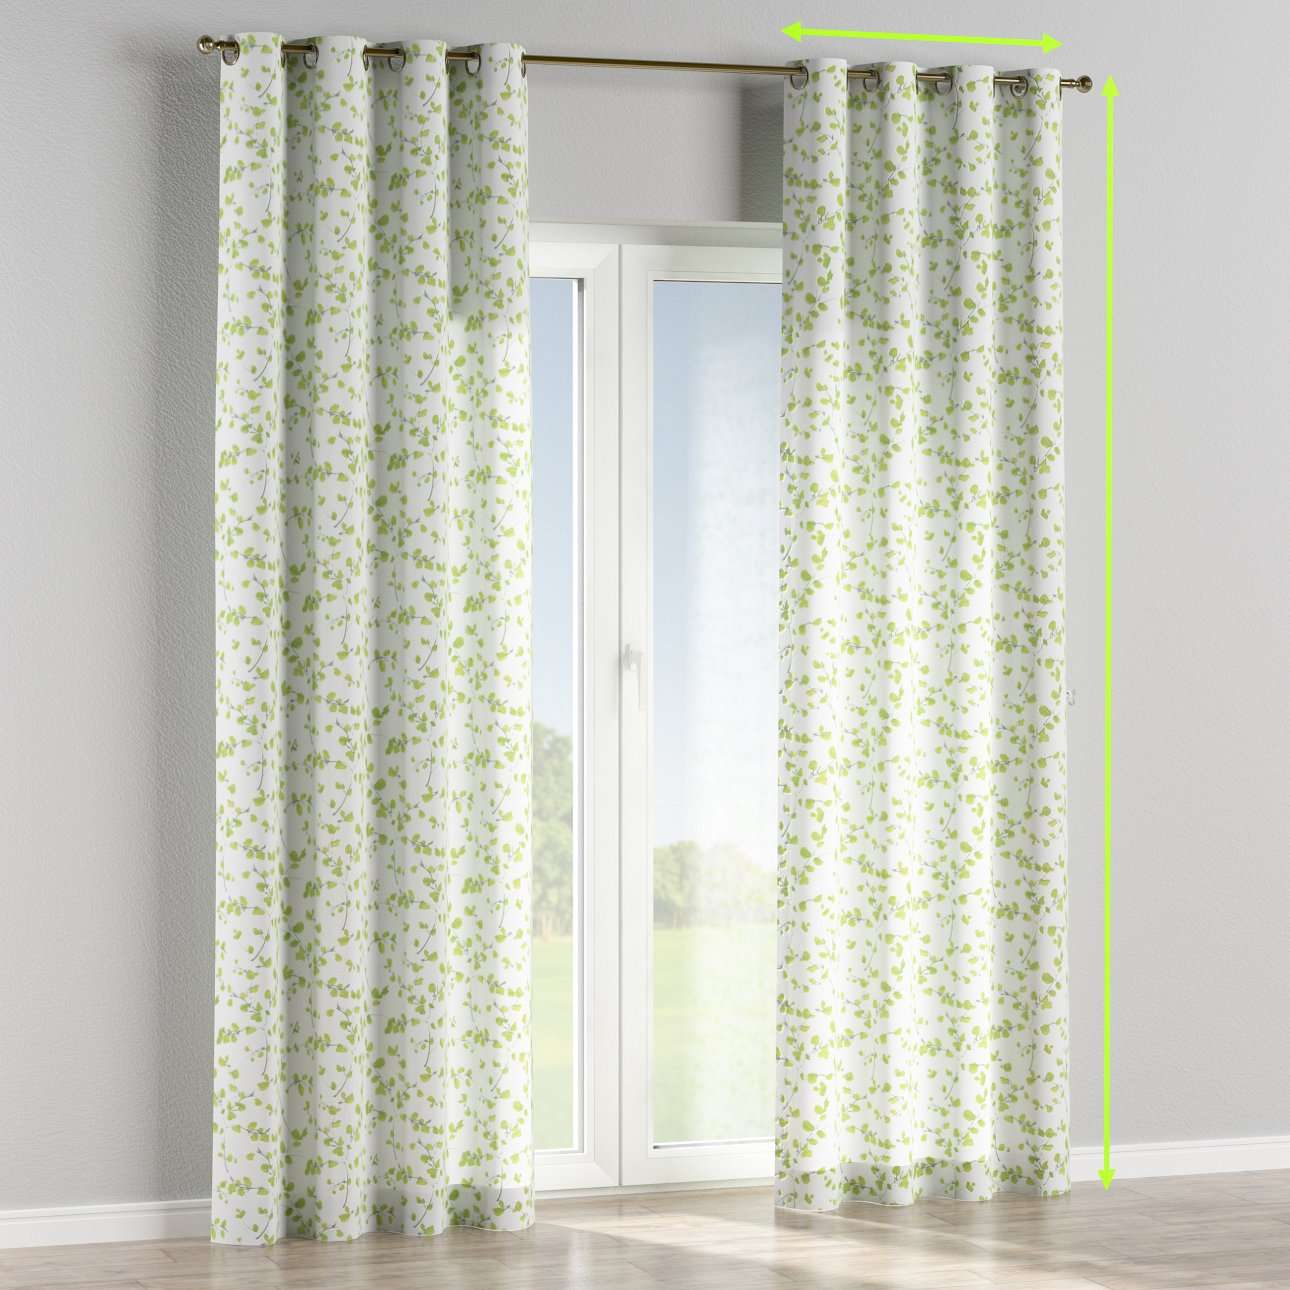 Eyelet curtains in collection Aquarelle, fabric: 140-76